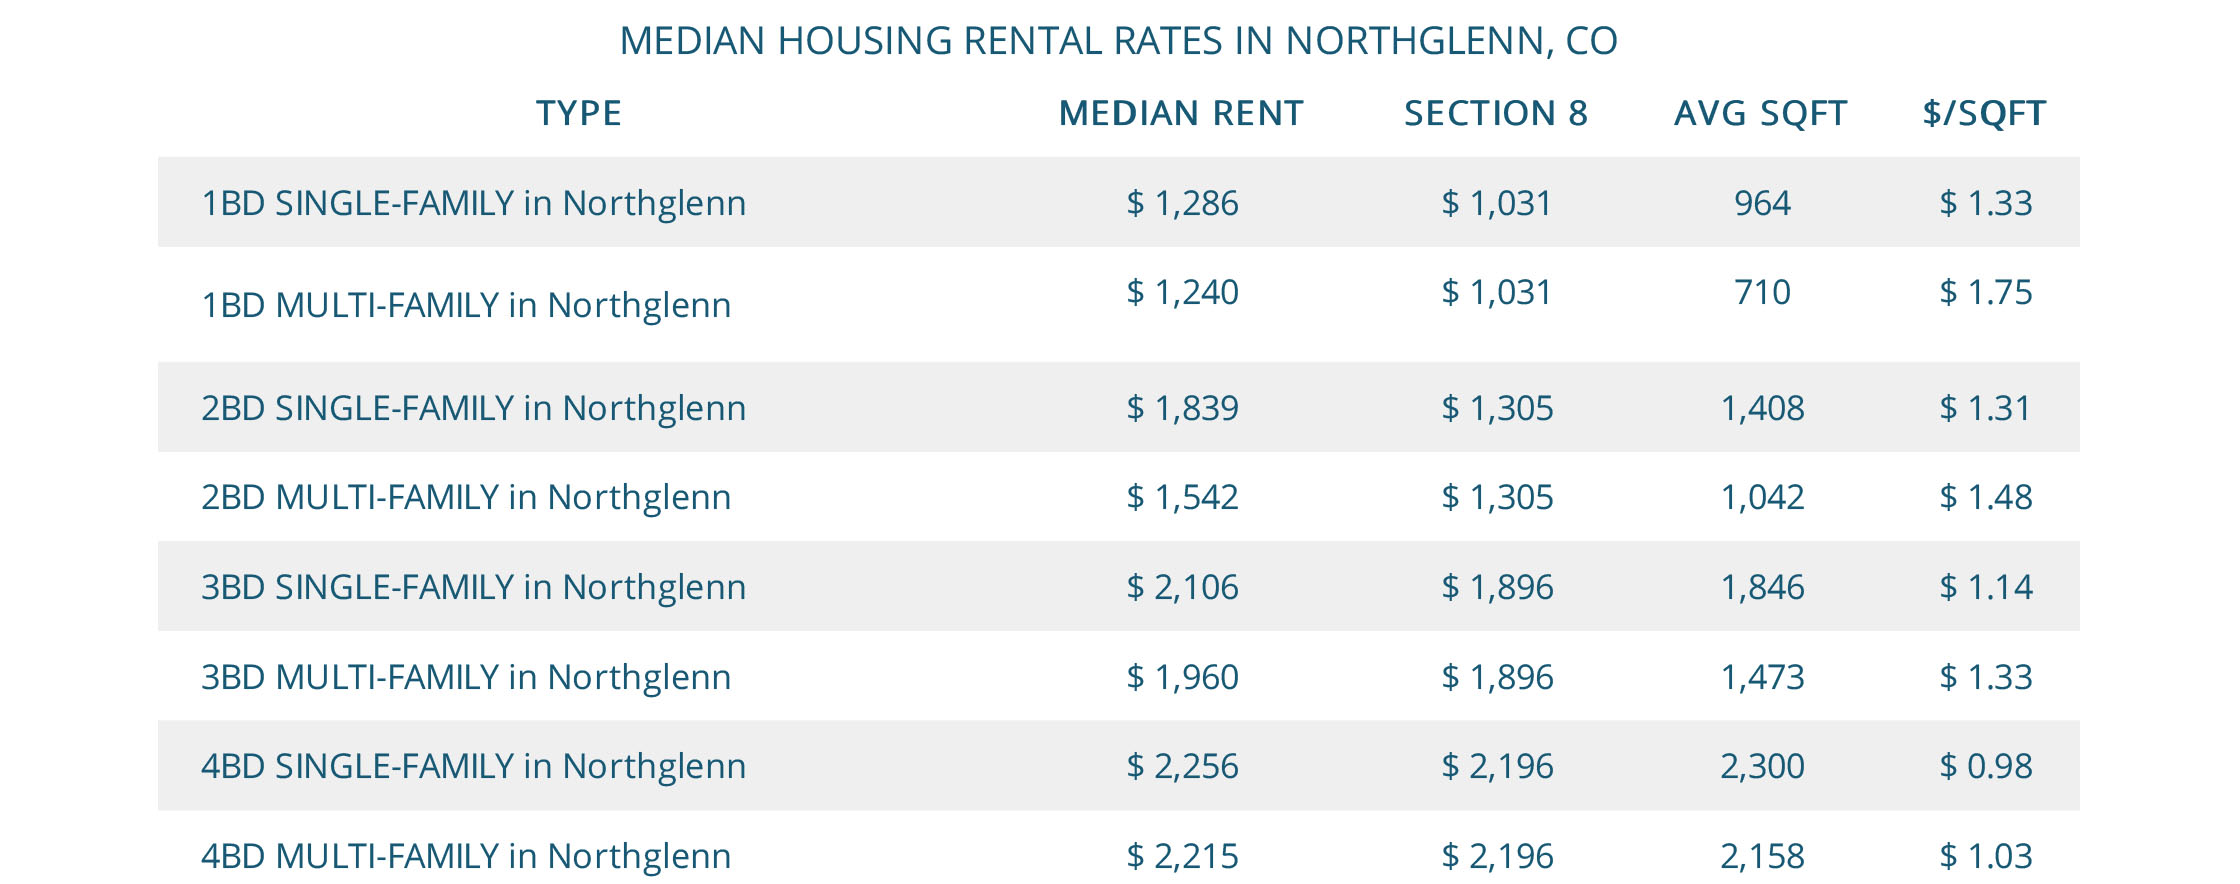 Median Northglenn Housing Rental Rates